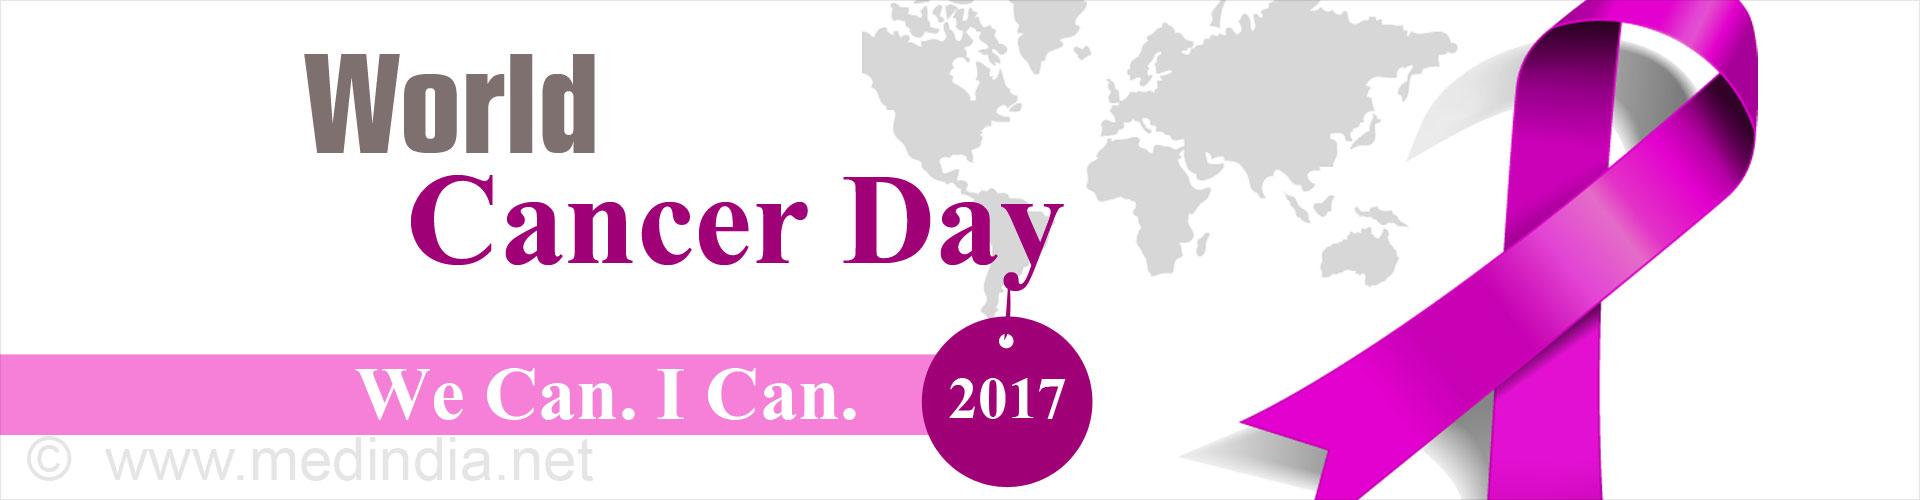 World Cancer Day 2017: We Can. I Can.